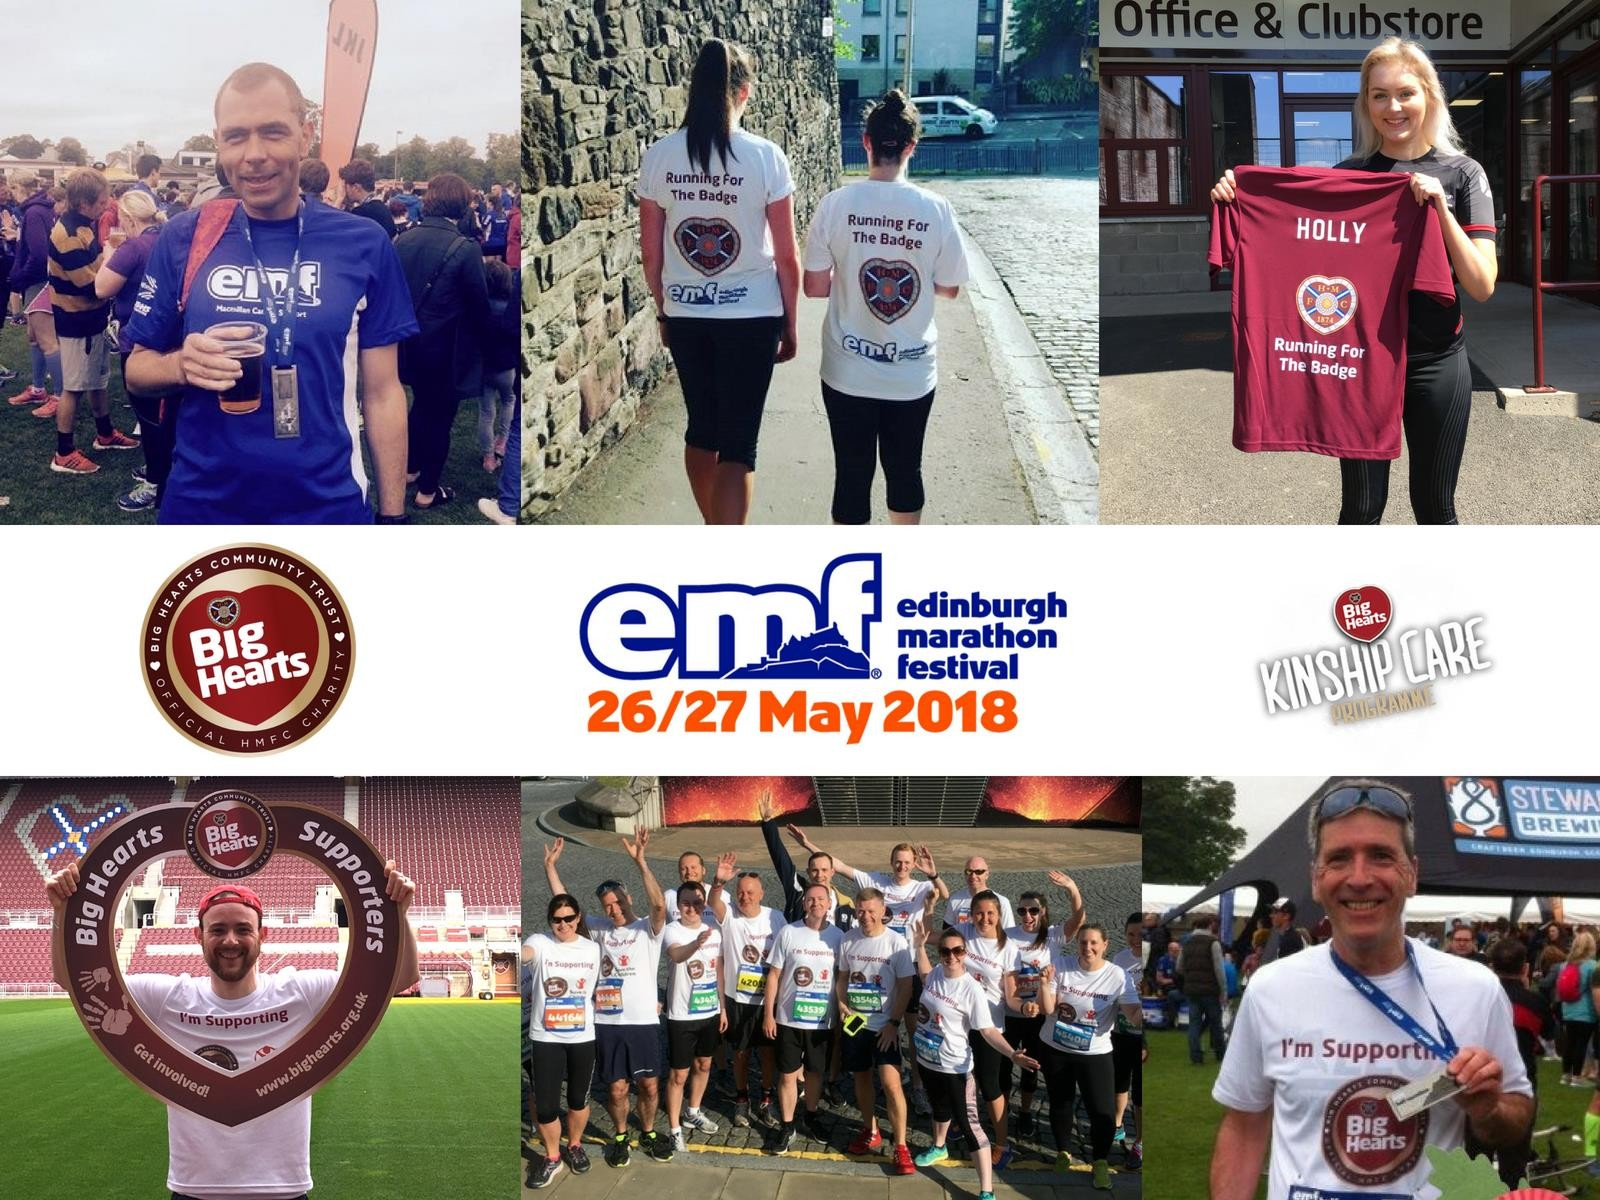 » EMF 2018 – Running 480 kms in aid of Kinship Care families